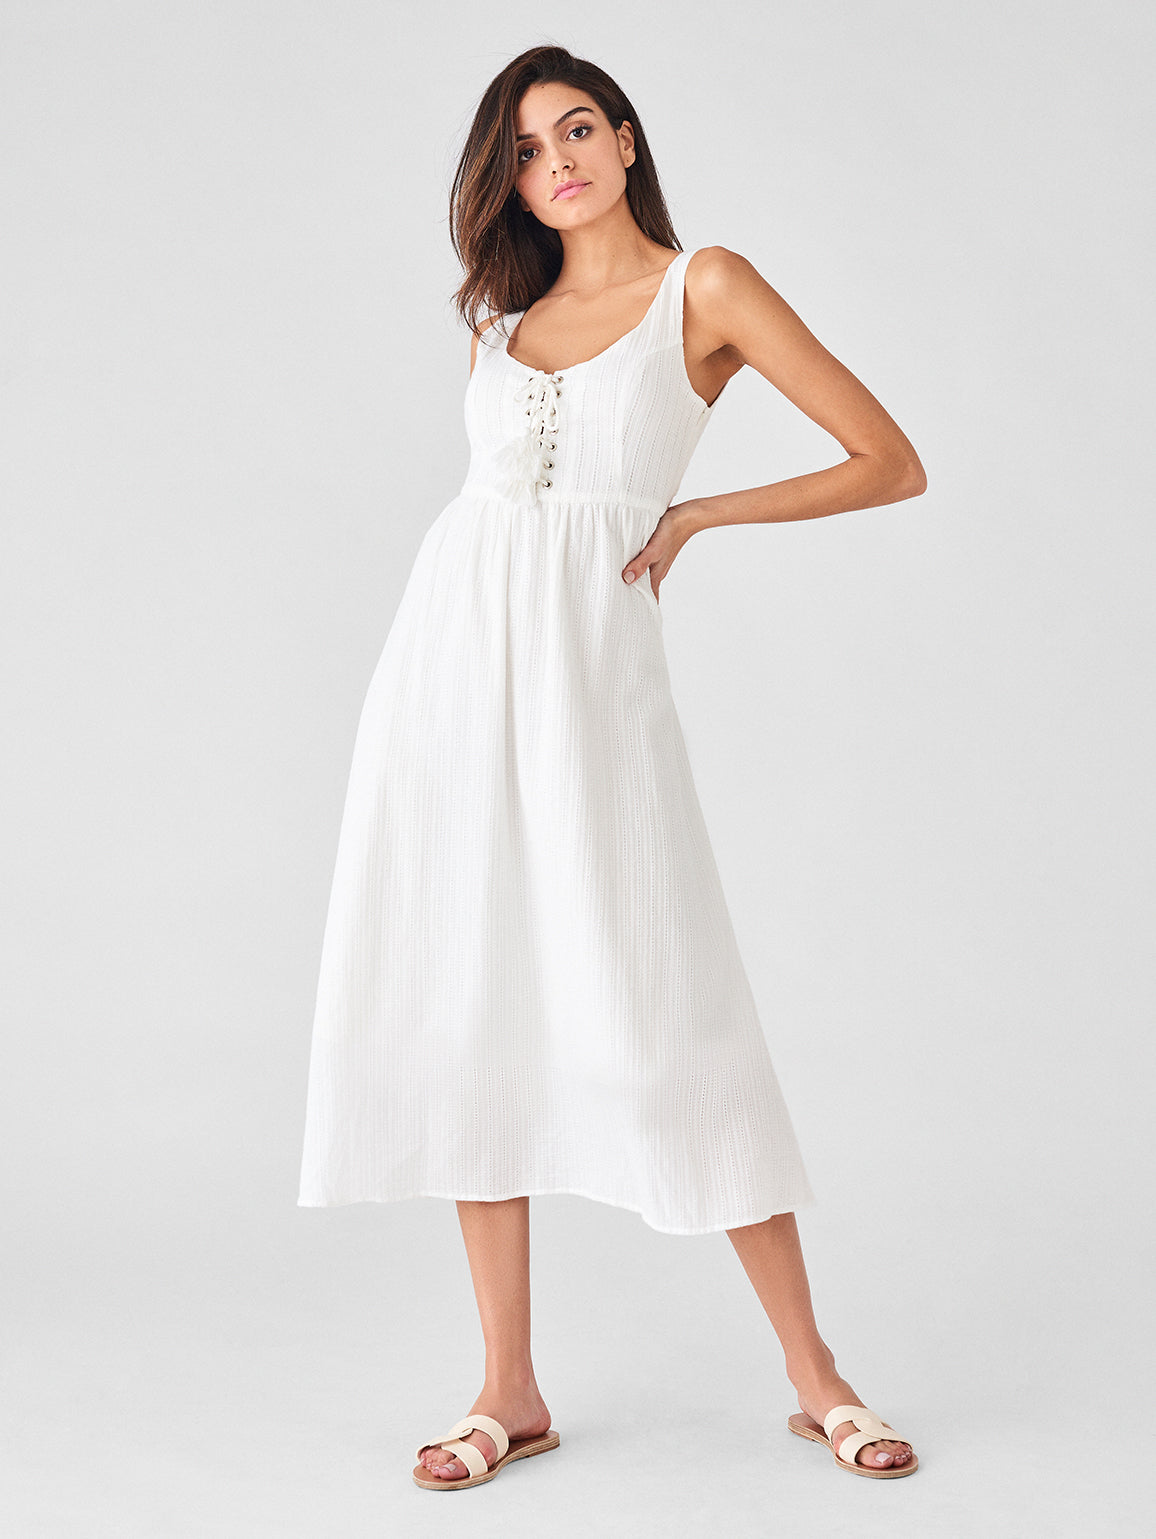 Pineapple St Dress | White Eyelet